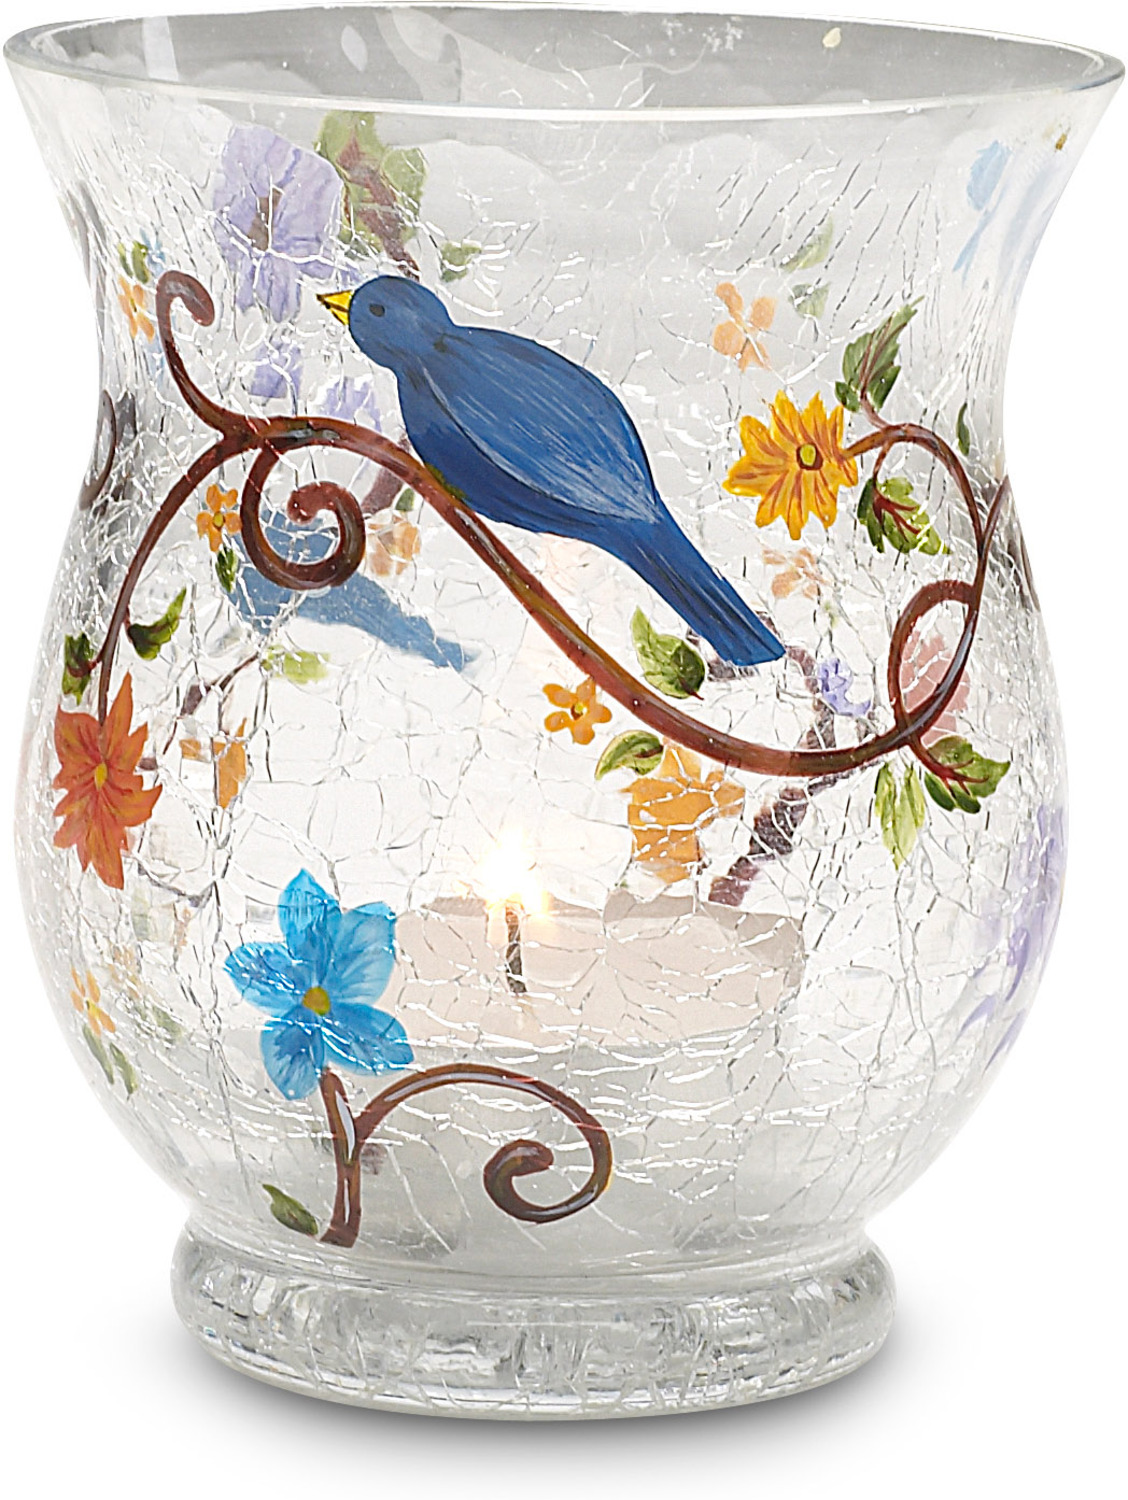 "Nature's Whisper by We Love - Nature's Whisper - 3.5"" x 3""Glass Candle Holder"